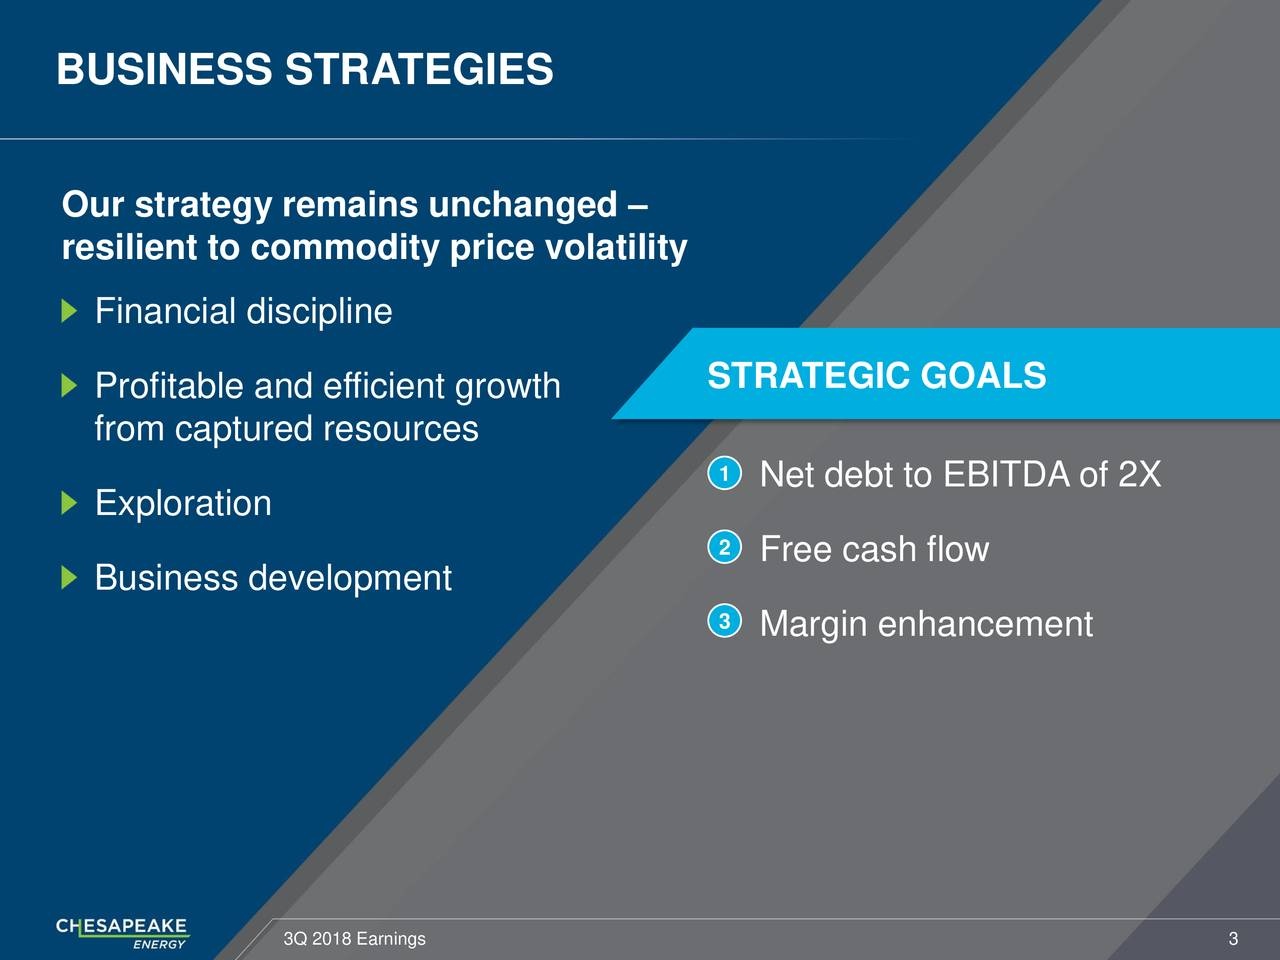 Our strategy remains unchanged – resilient to commodity price volatility Financial discipline Profitable and efficient growth STRATEGIC GOALS from captured resources 1 Net debt to EBITDA of 2X Exploration 2 Business development Free cash flow 3 Margin enhancement